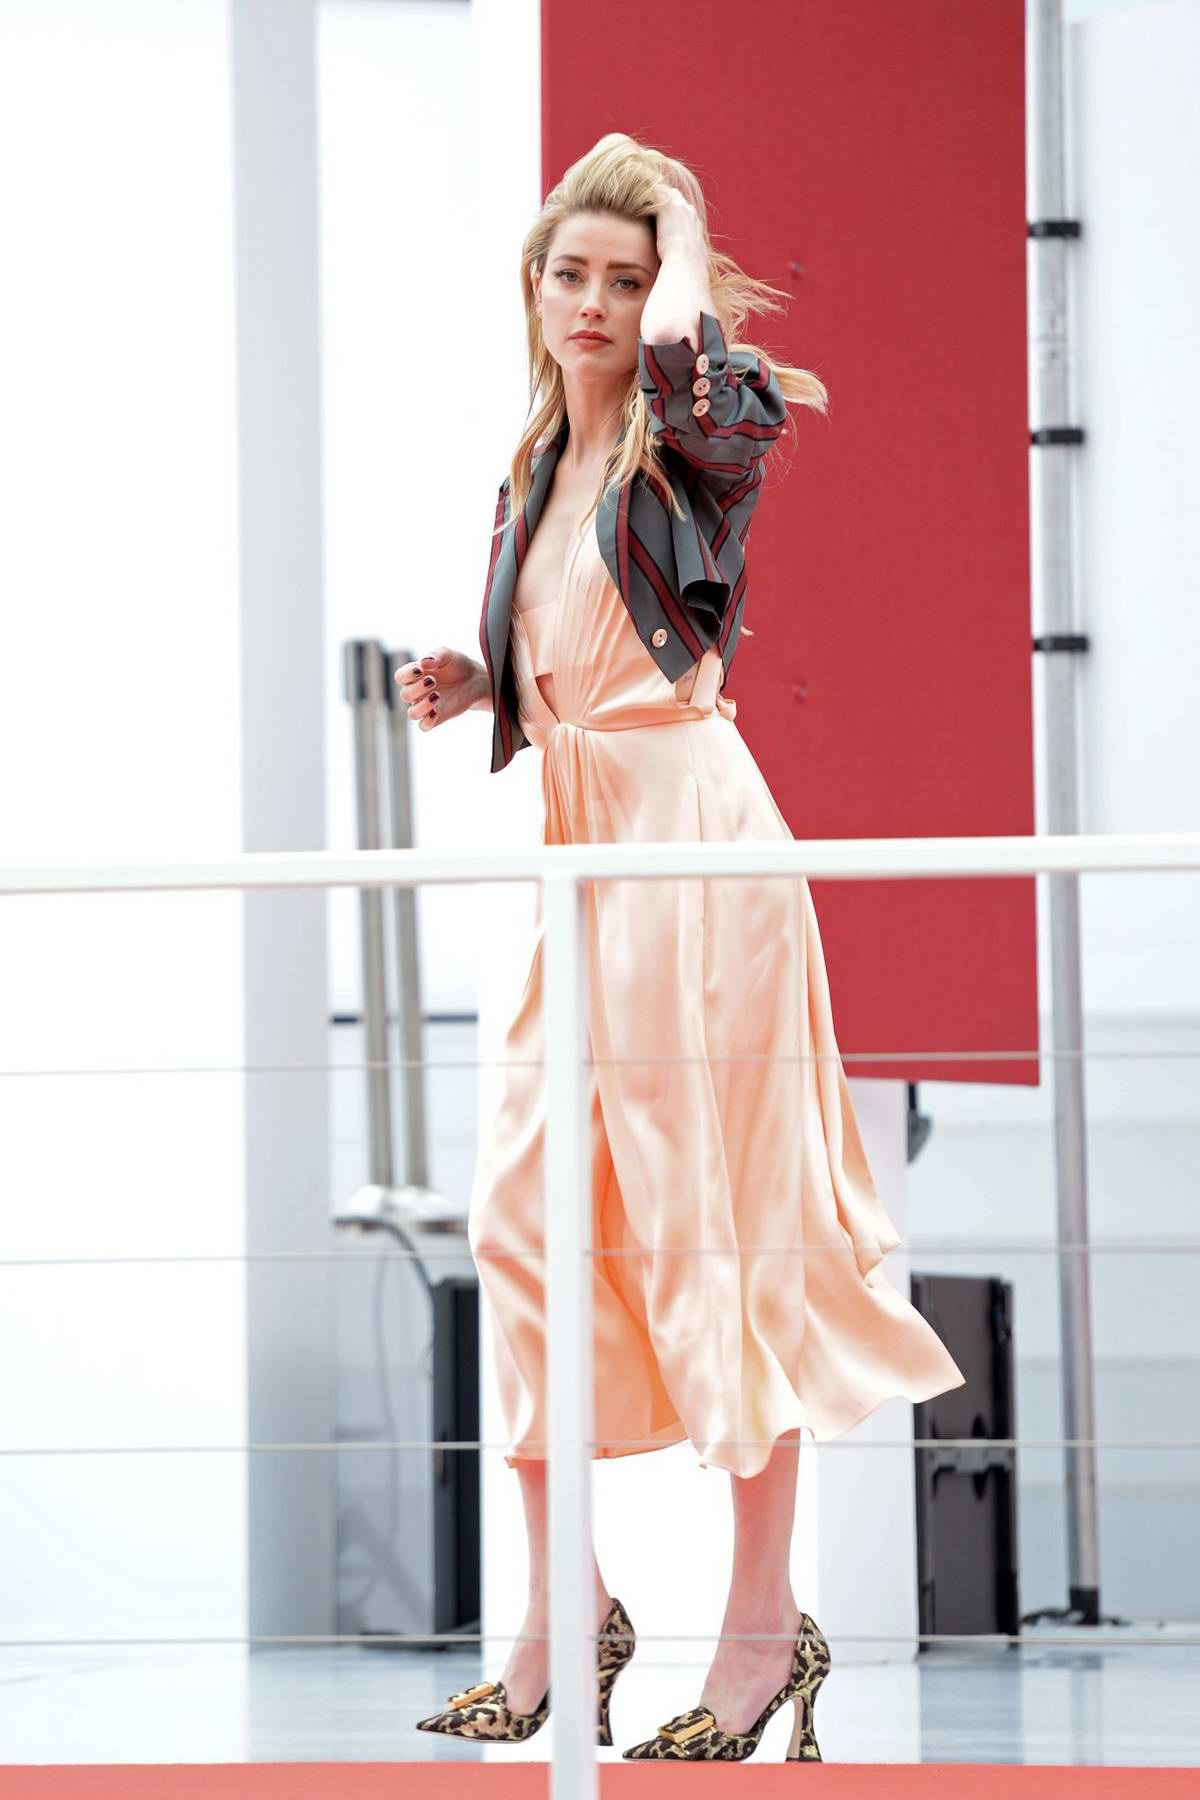 Amber Heard spotted on the set of a photoshoot for L'Oréal Paris in Cannes, France